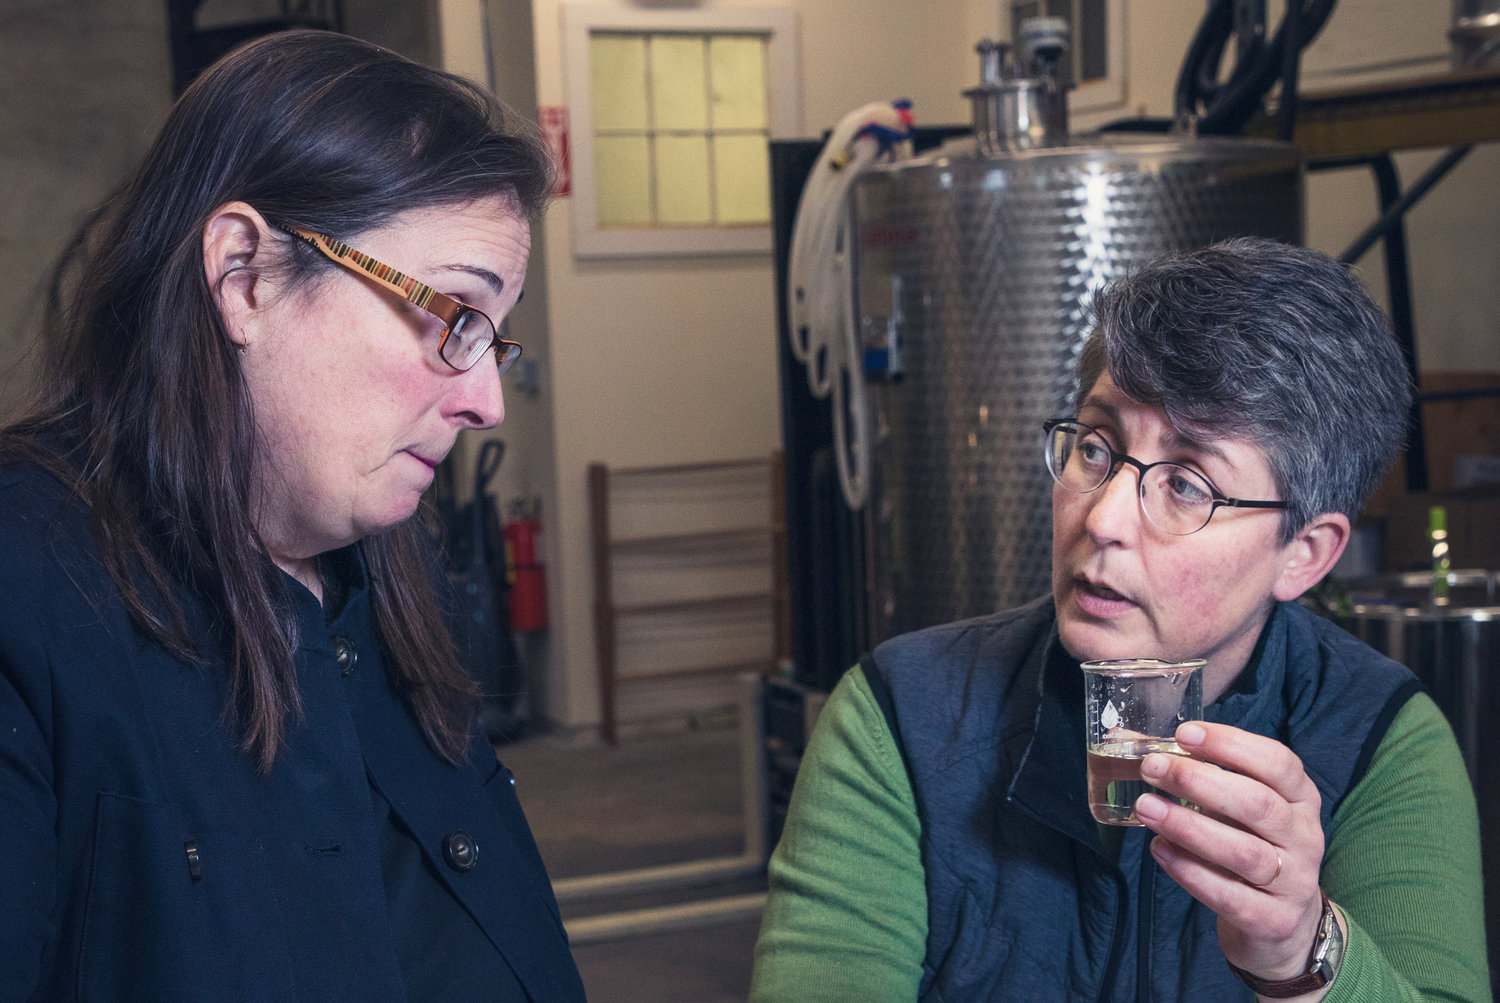 Owners Cathy Plourde and Kara Larson are meticulous about their product and operation